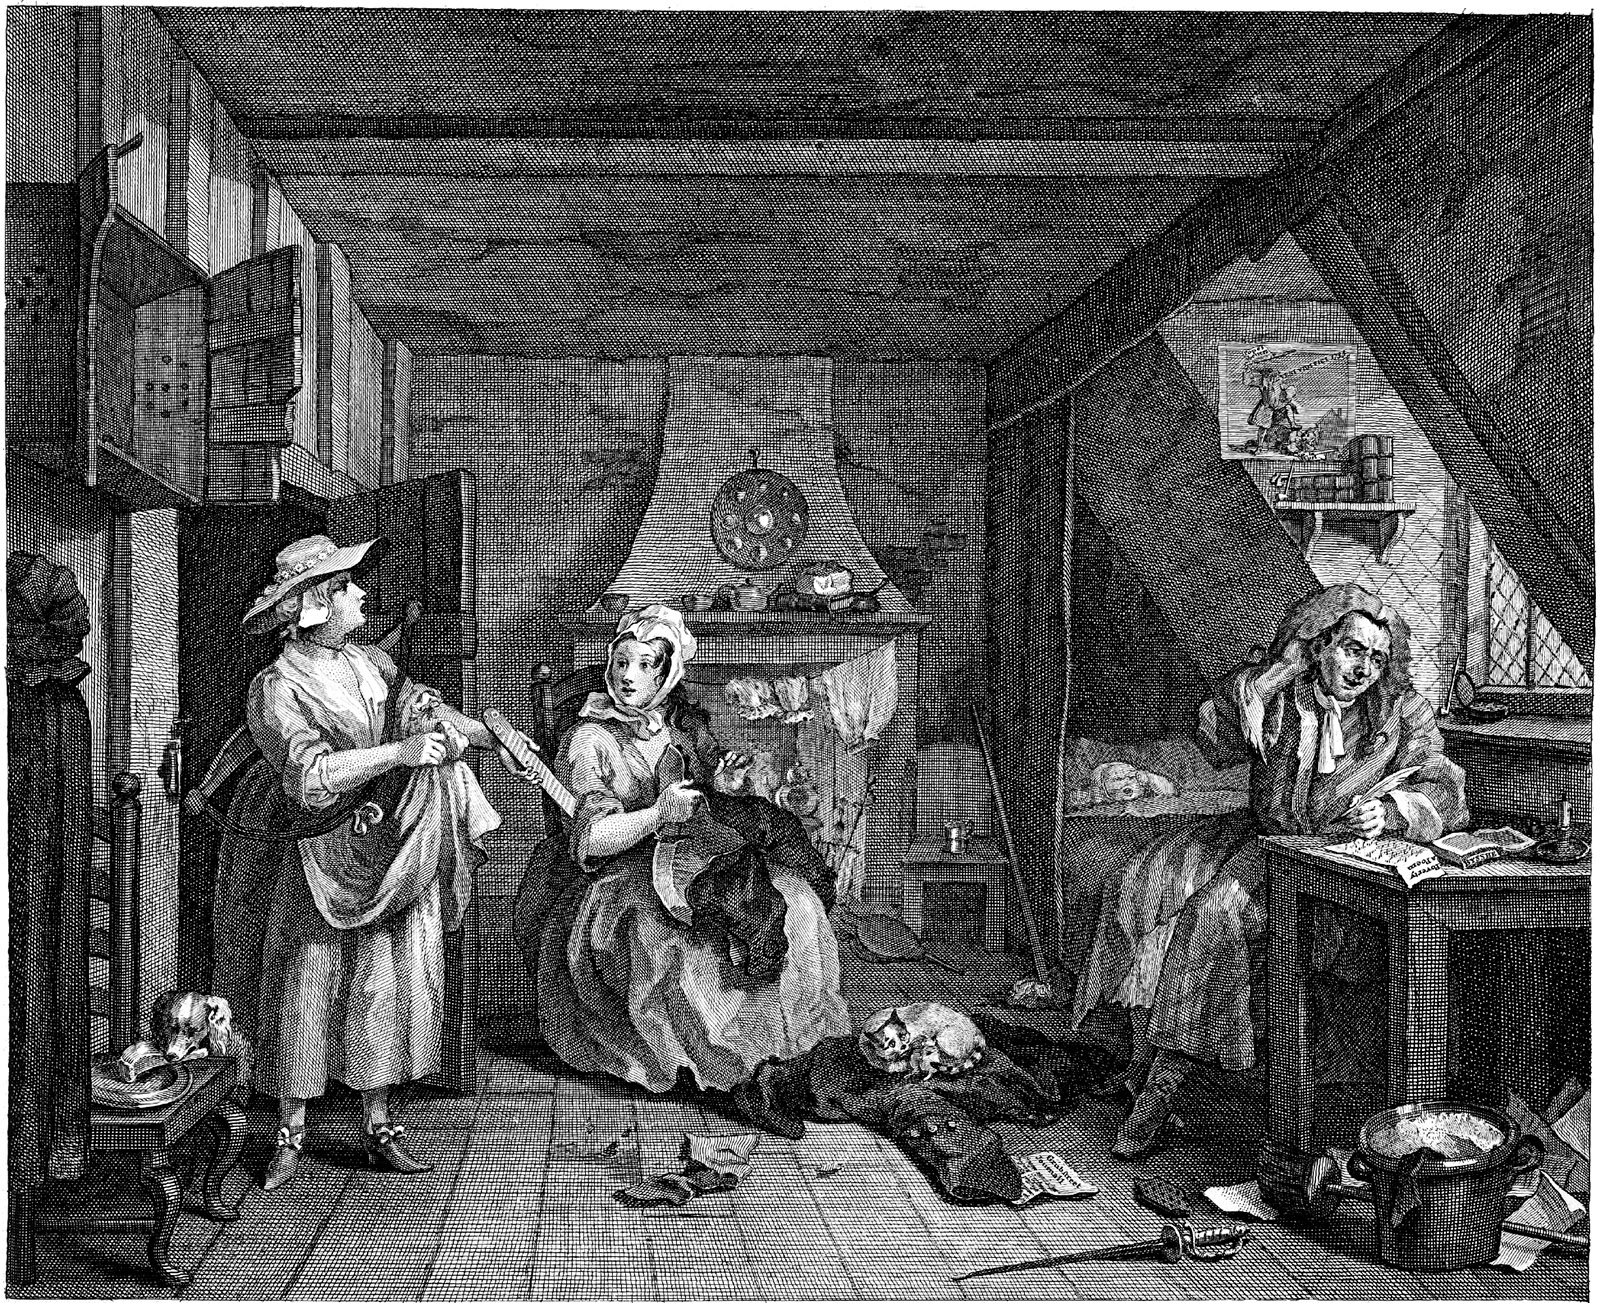 'The Distressed Poet'; engraving by William Hogarth. Hanging above the writer is a satirical print showing Alexander Pope fighting with Edmund Curll